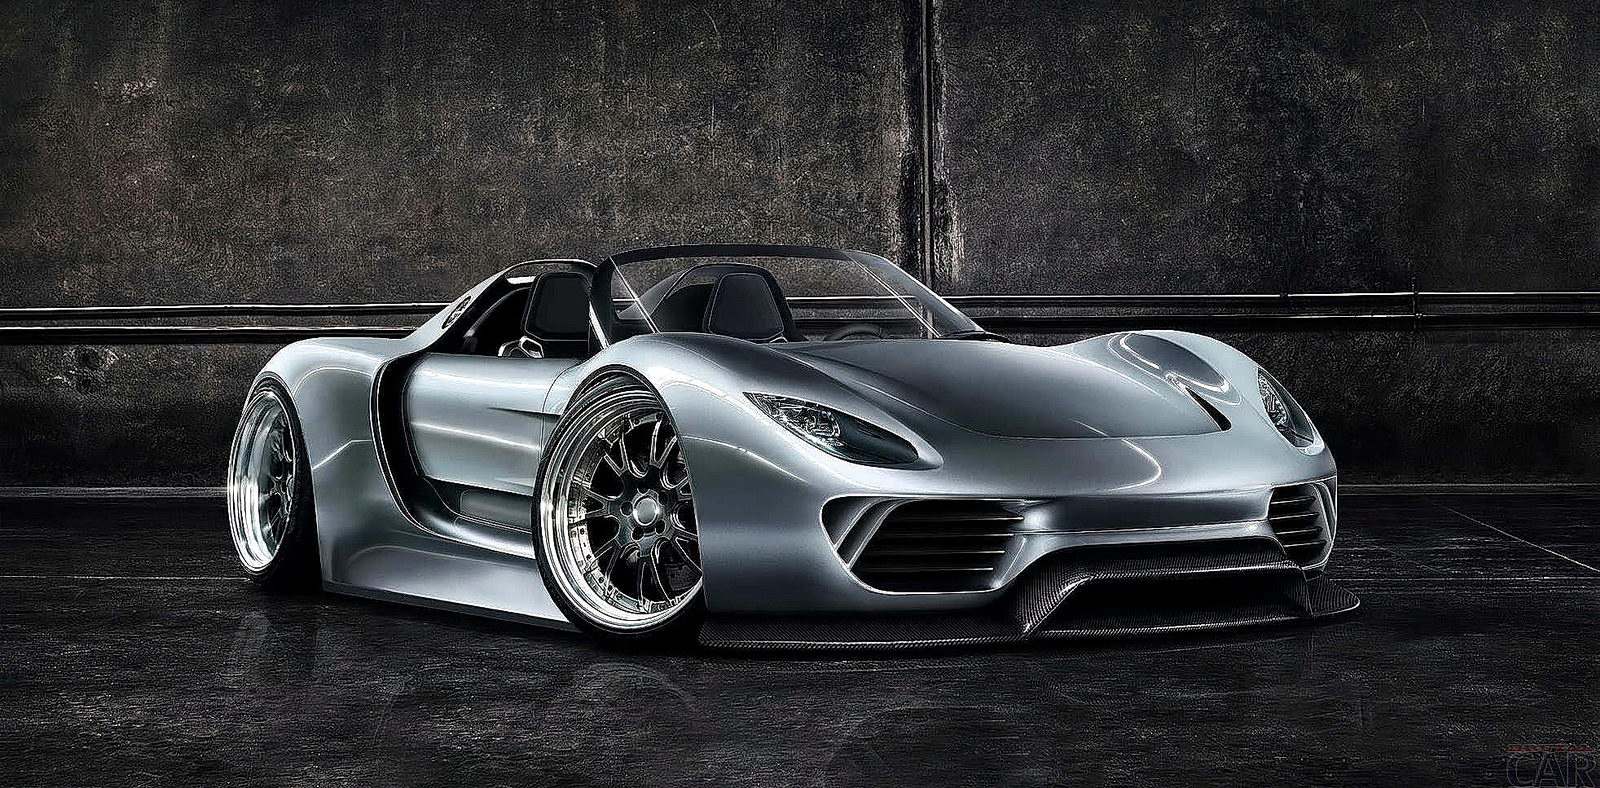 Sample – Porsche 918 Spyder